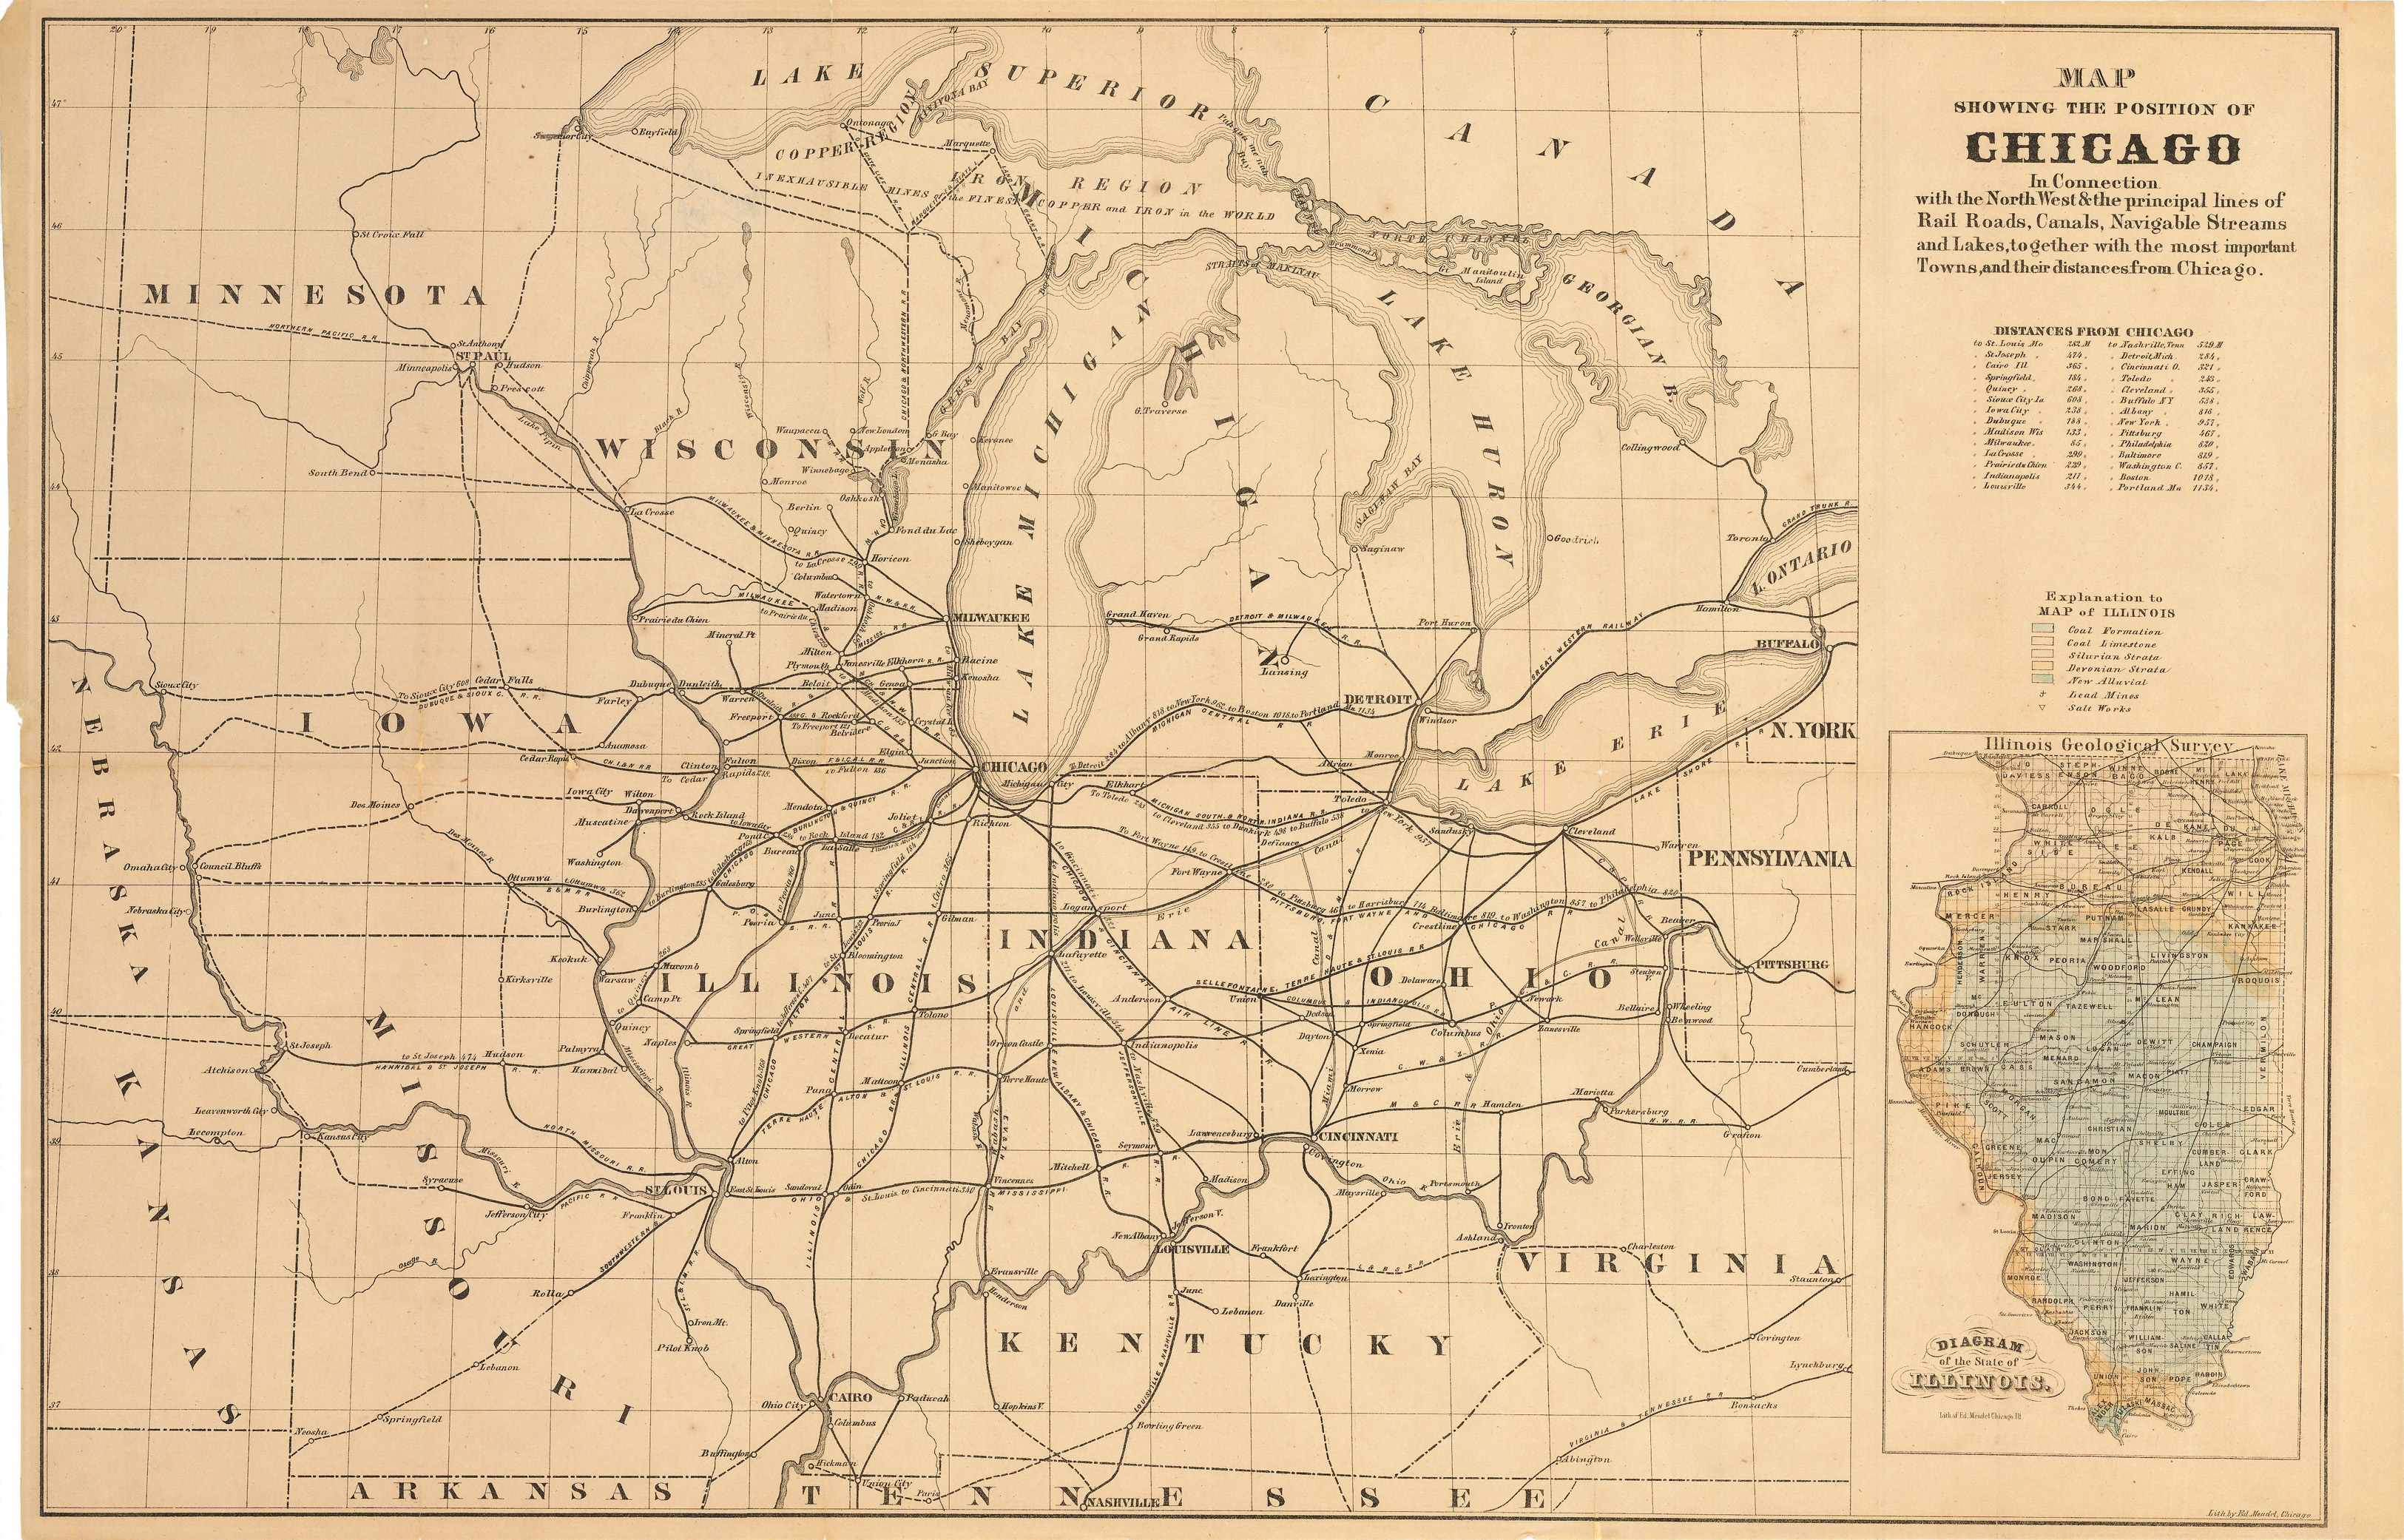 Antique Railroad Map Midwest Chicago Hjbmapscom - Map of us railroads in 1850